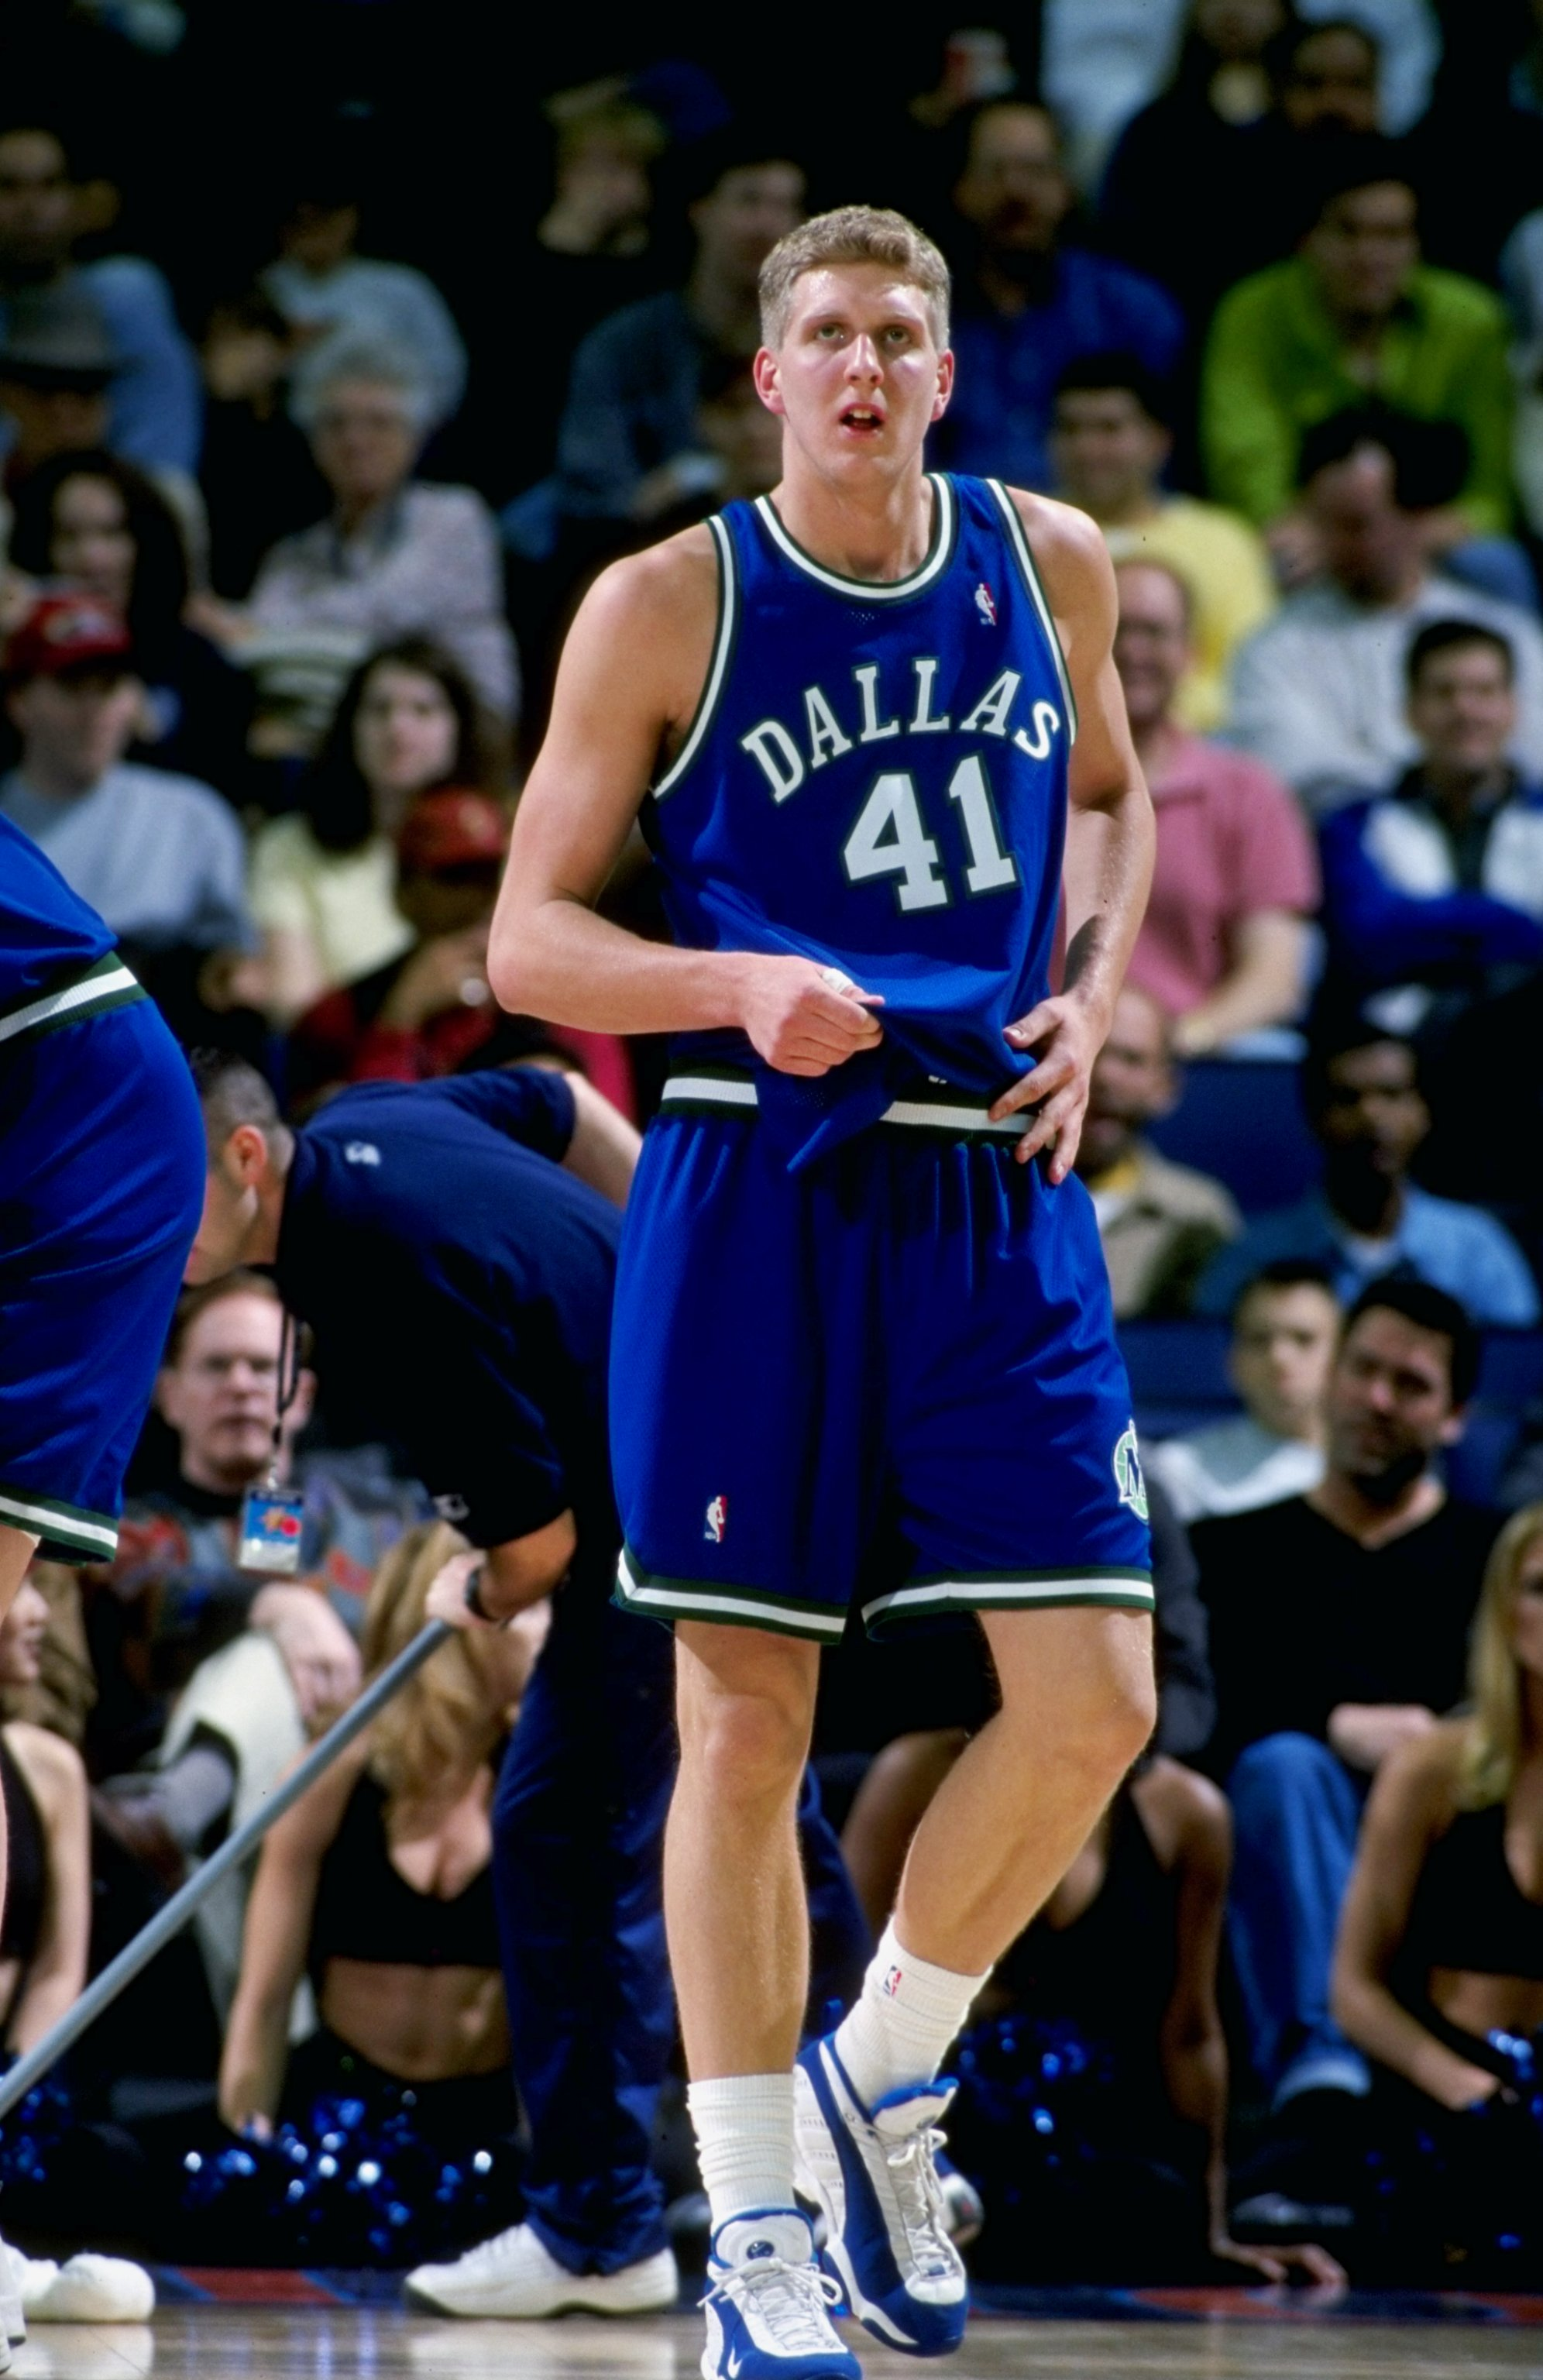 19 Feb 1999:  Dirk Nowitzki #41 of the Dallas Mavericks walks on the court during the game against the Golden State Warriors at the Oakland Coliseum in Oakland, California. The Warriors defeated the Mavericks 84-79.  Mandatory Credit: Jed Jacobsohn  /Alls